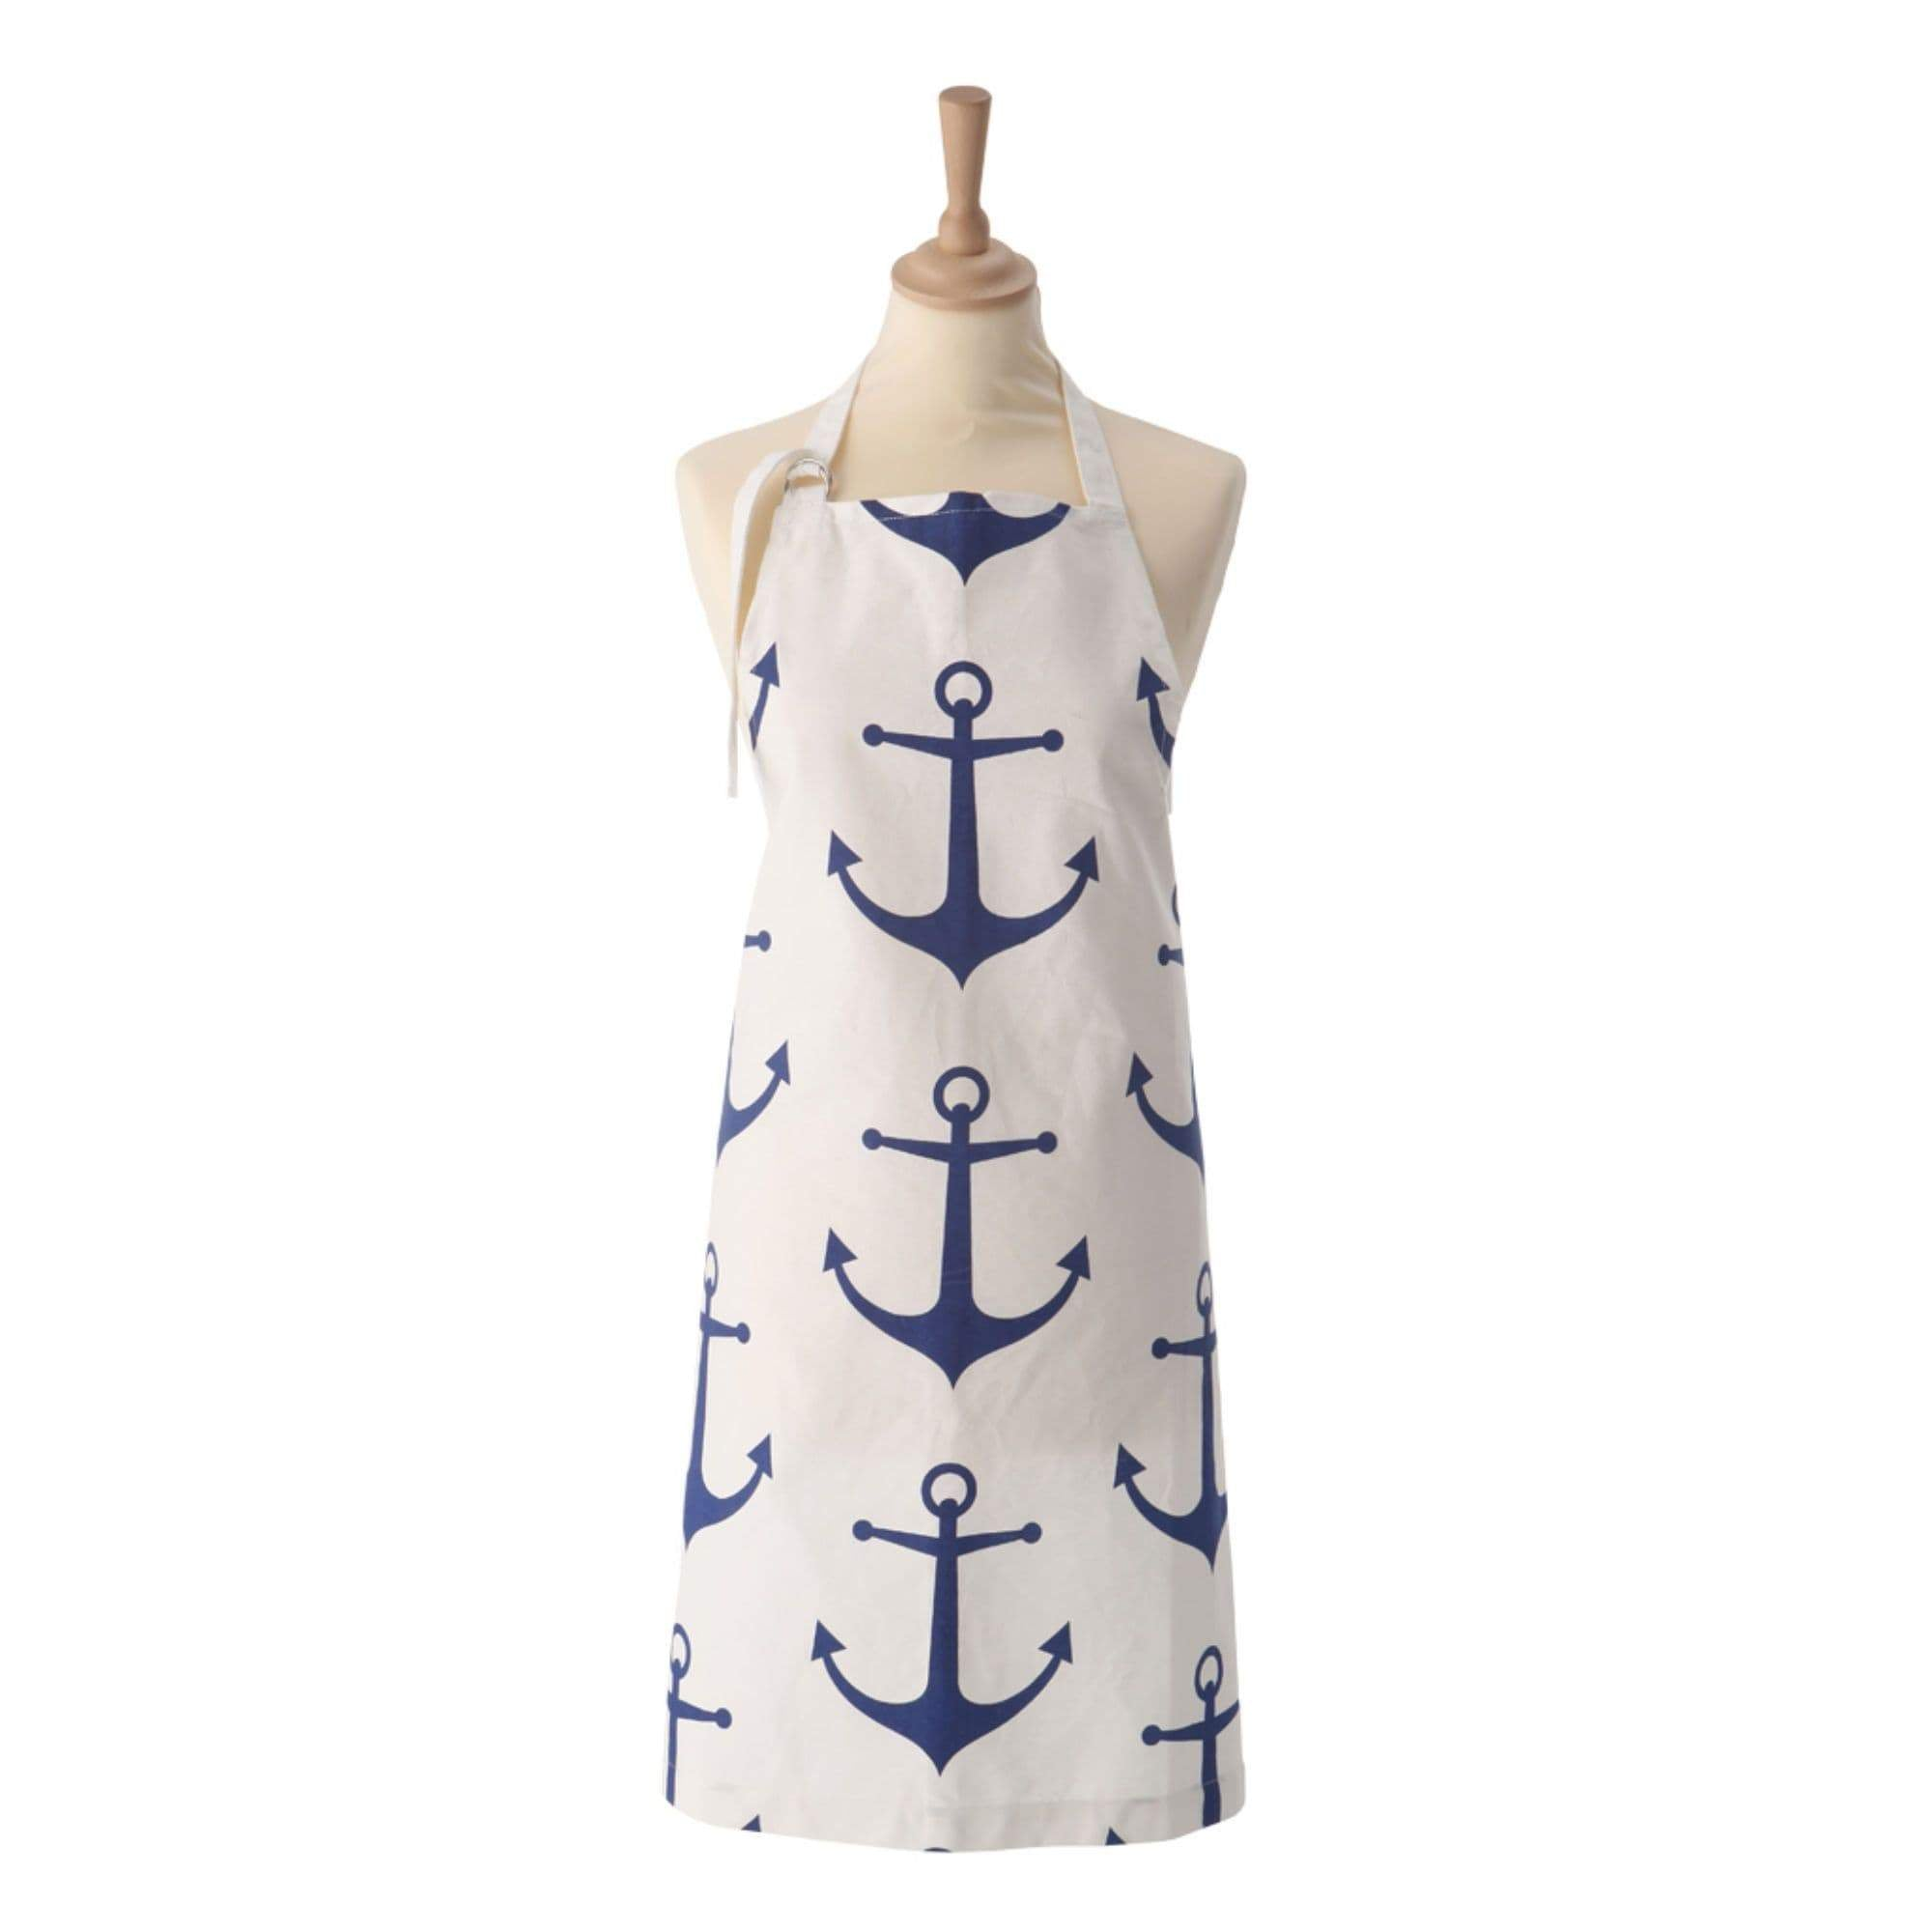 Batela Giftware-Apron-Apron - Blue And White Anchor